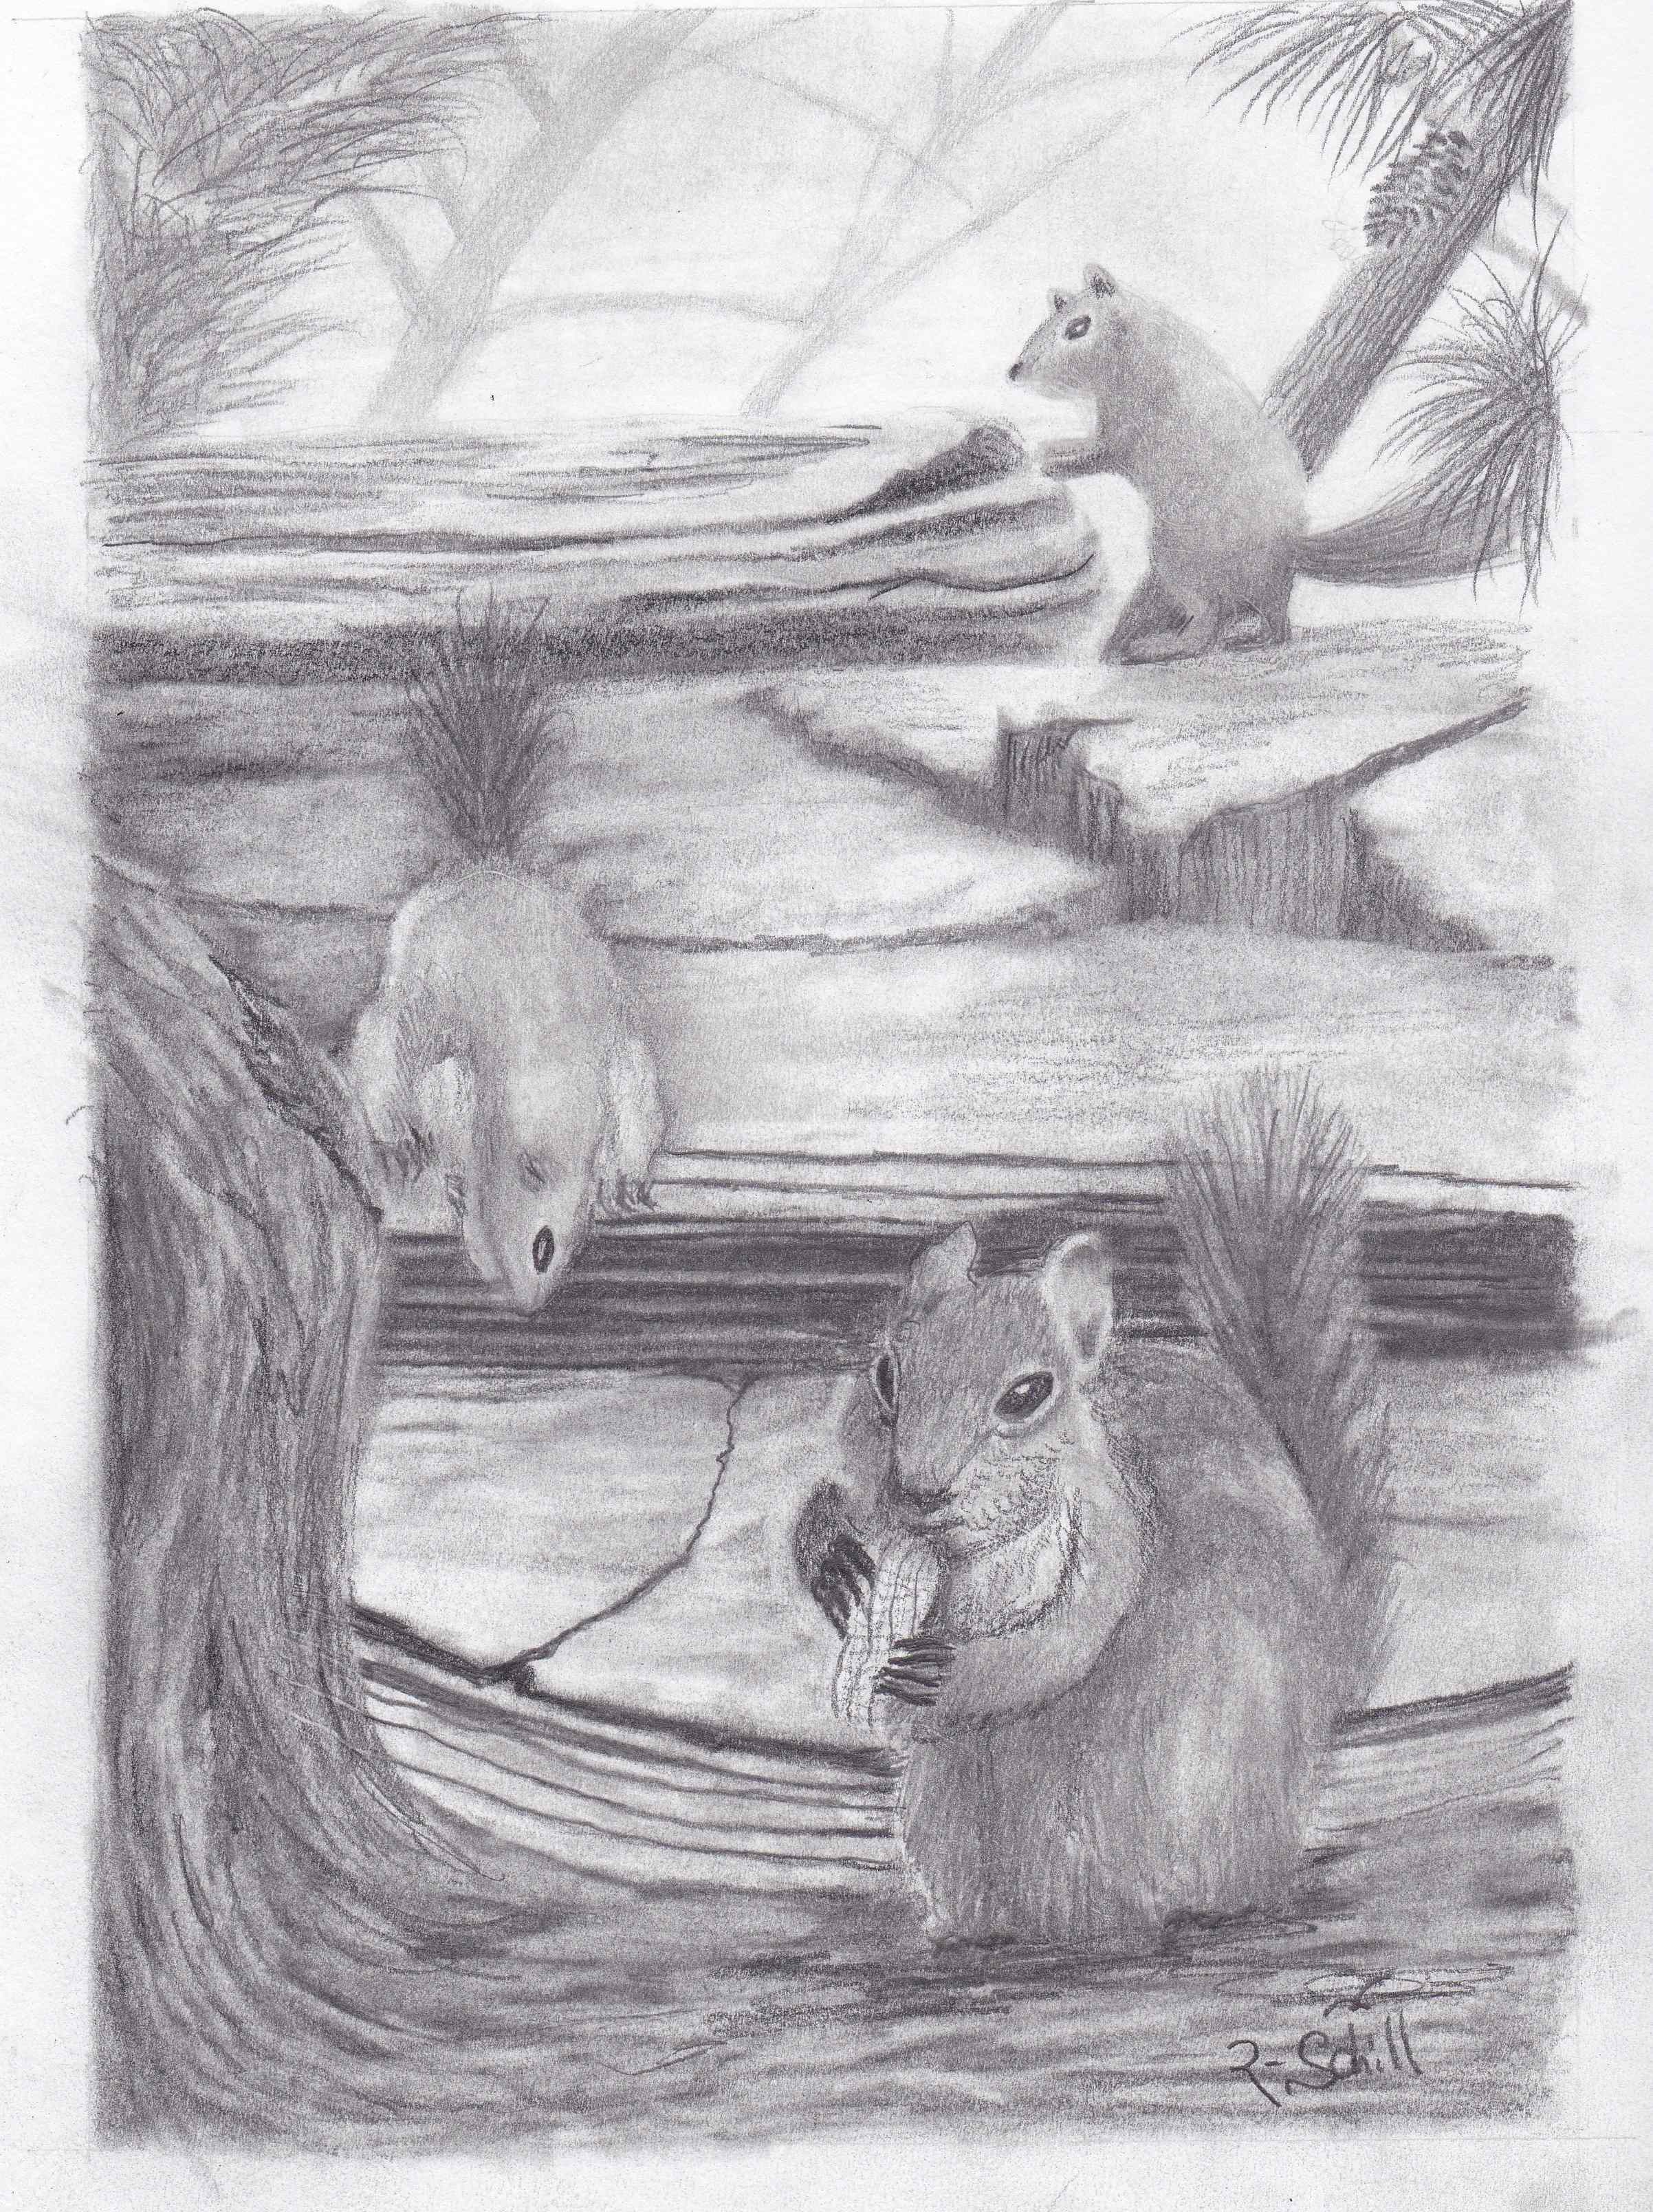 Squirrels pencil drawing by inmate artist Randy Schill Wisconsin-IMG_20170825_0003 - Copy.jpg